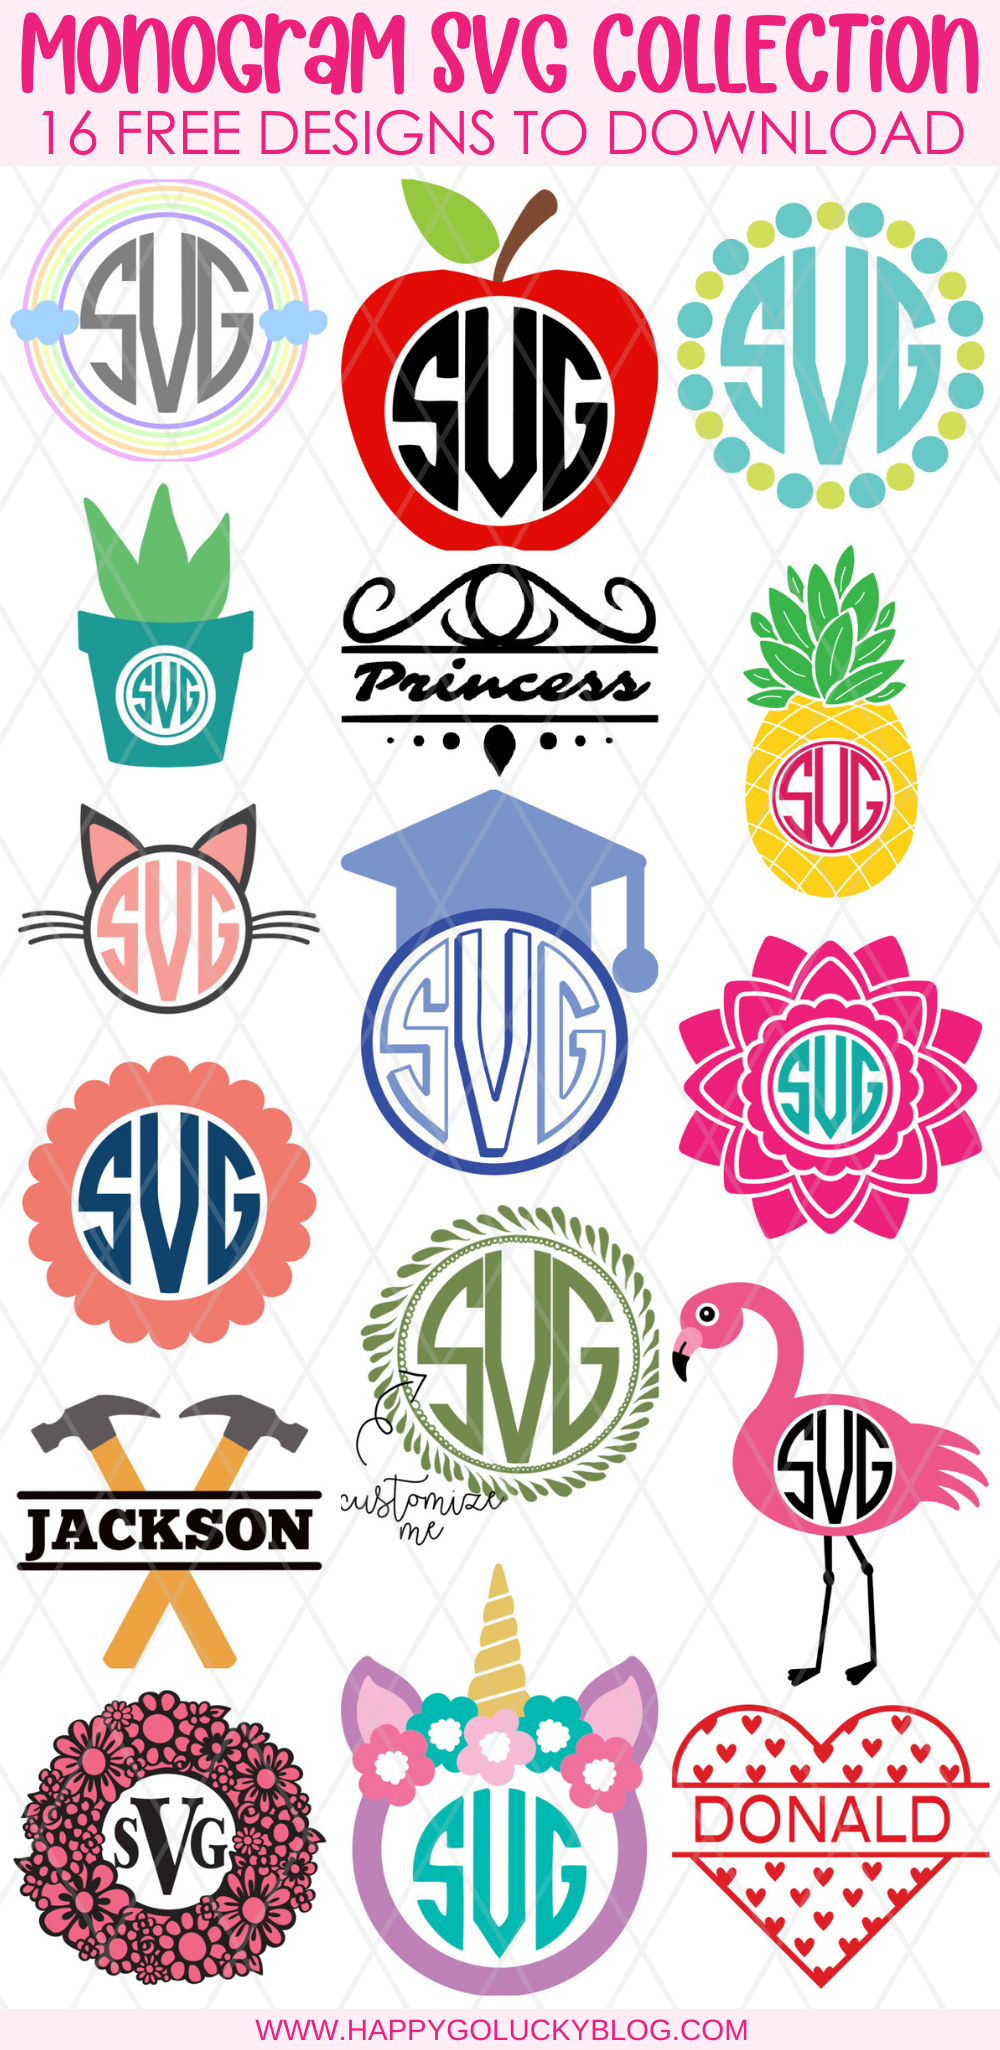 Free Monogram SVG Collection with 16 free cut files to download